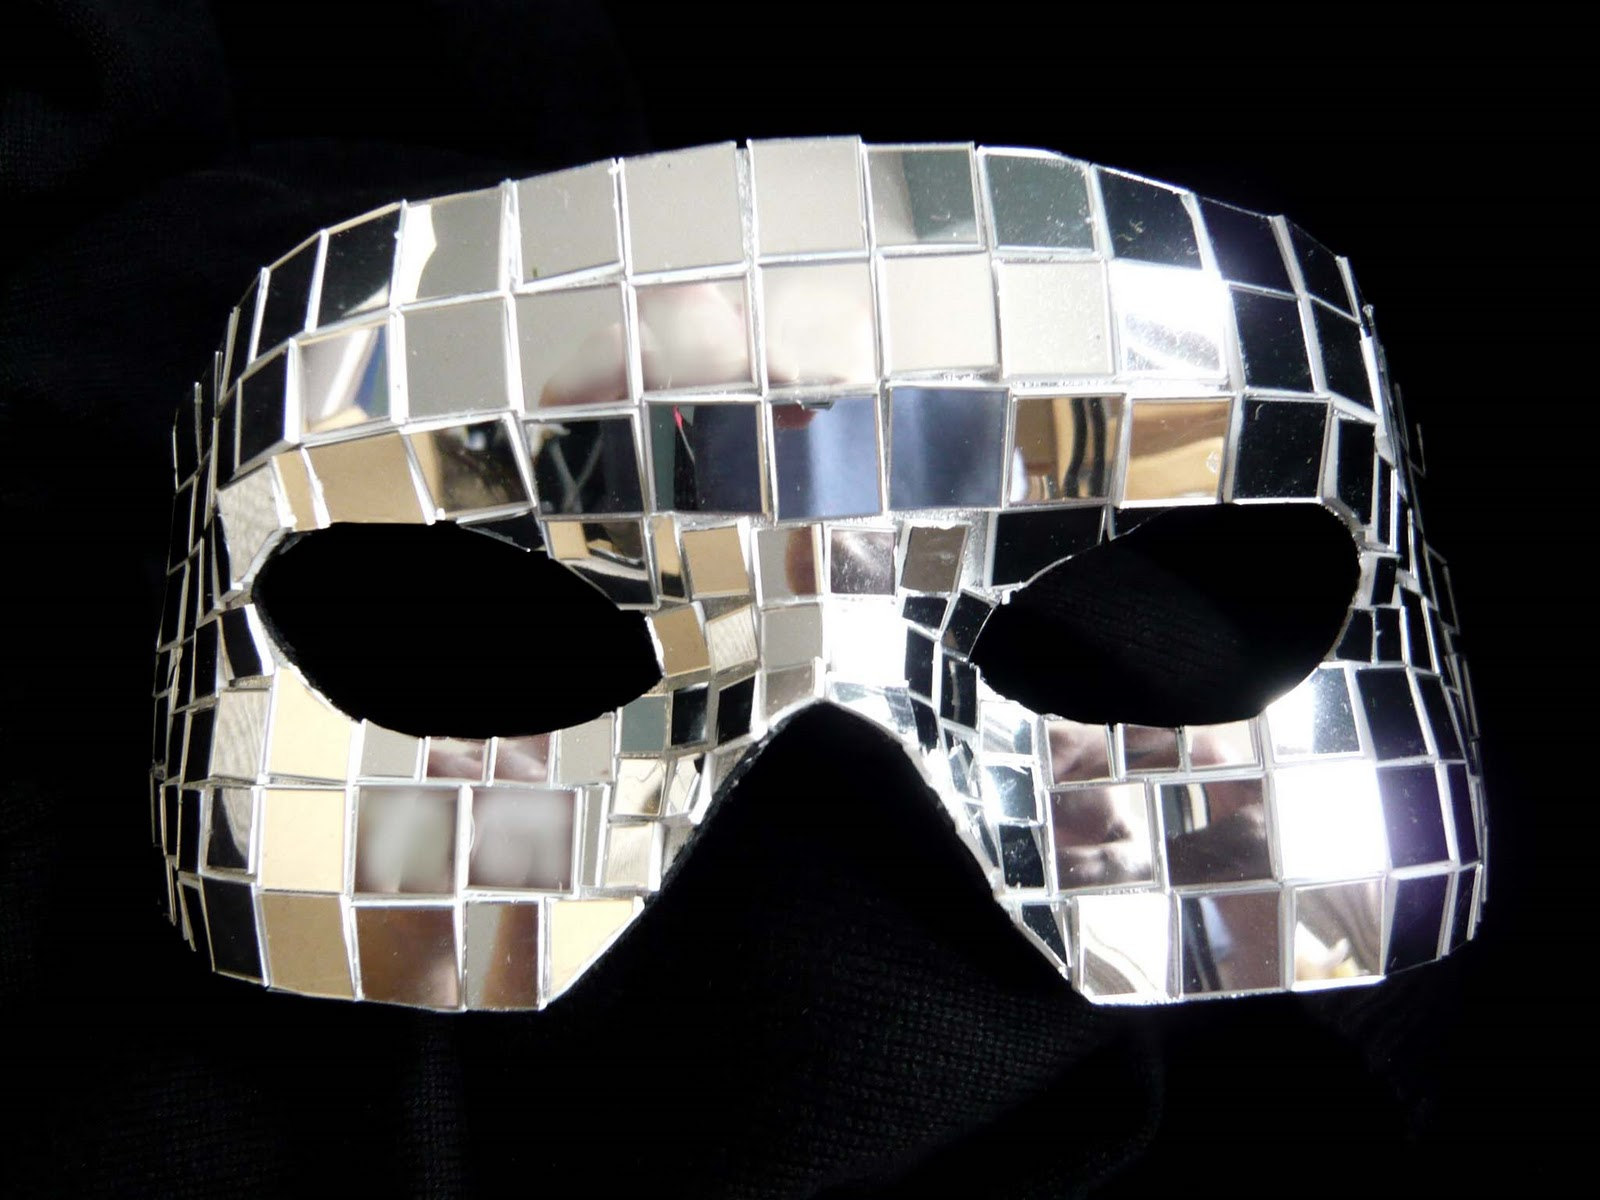 Maskup Lady Gaga Poker Face New Shaped Masks From Wwwgagamaskcom